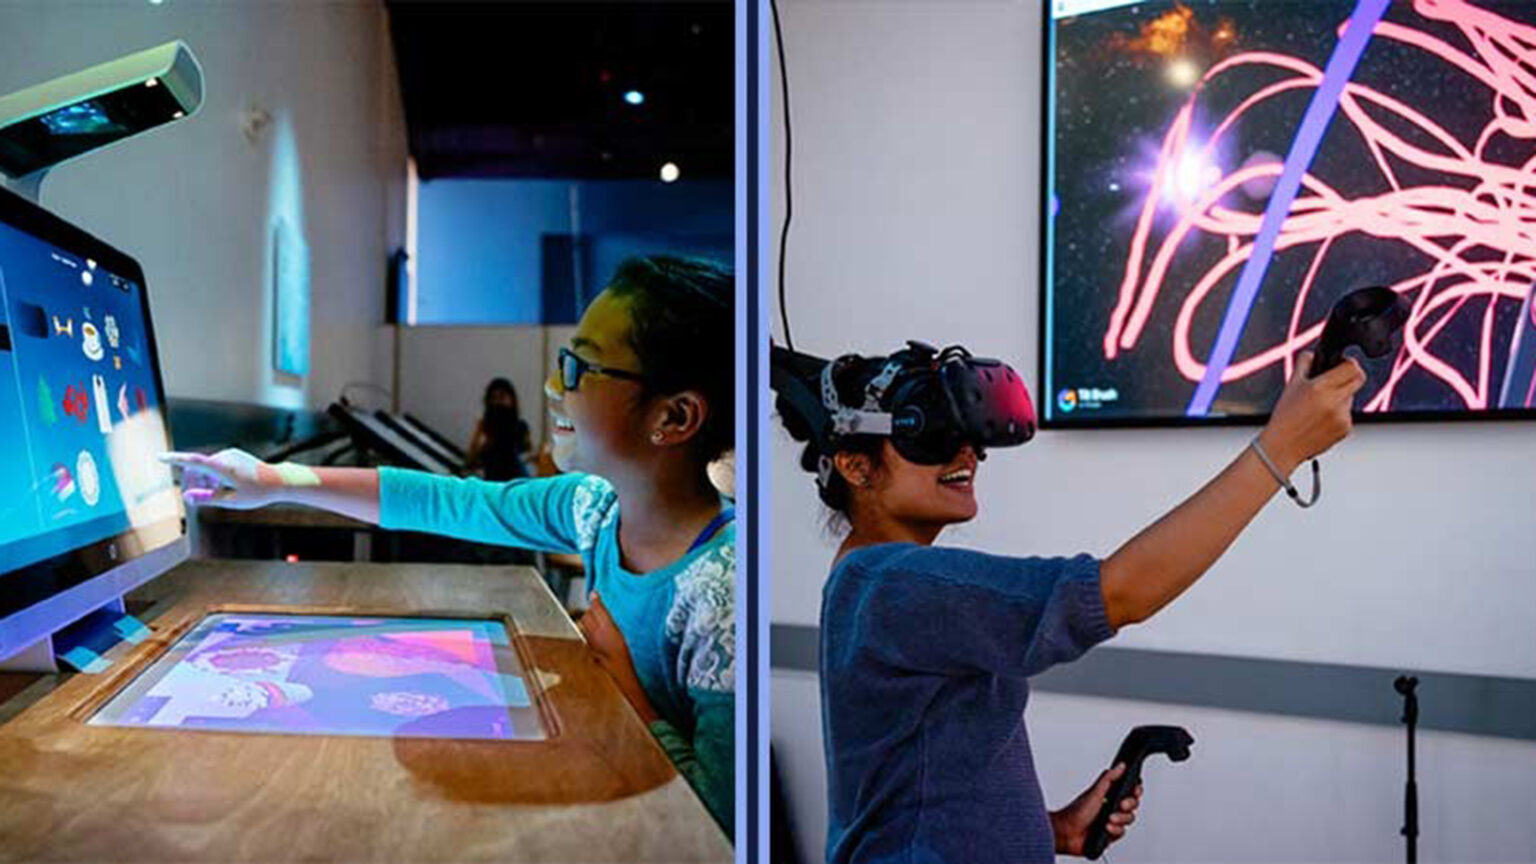 Images of two children doing virtual reality and computer touch screen activities